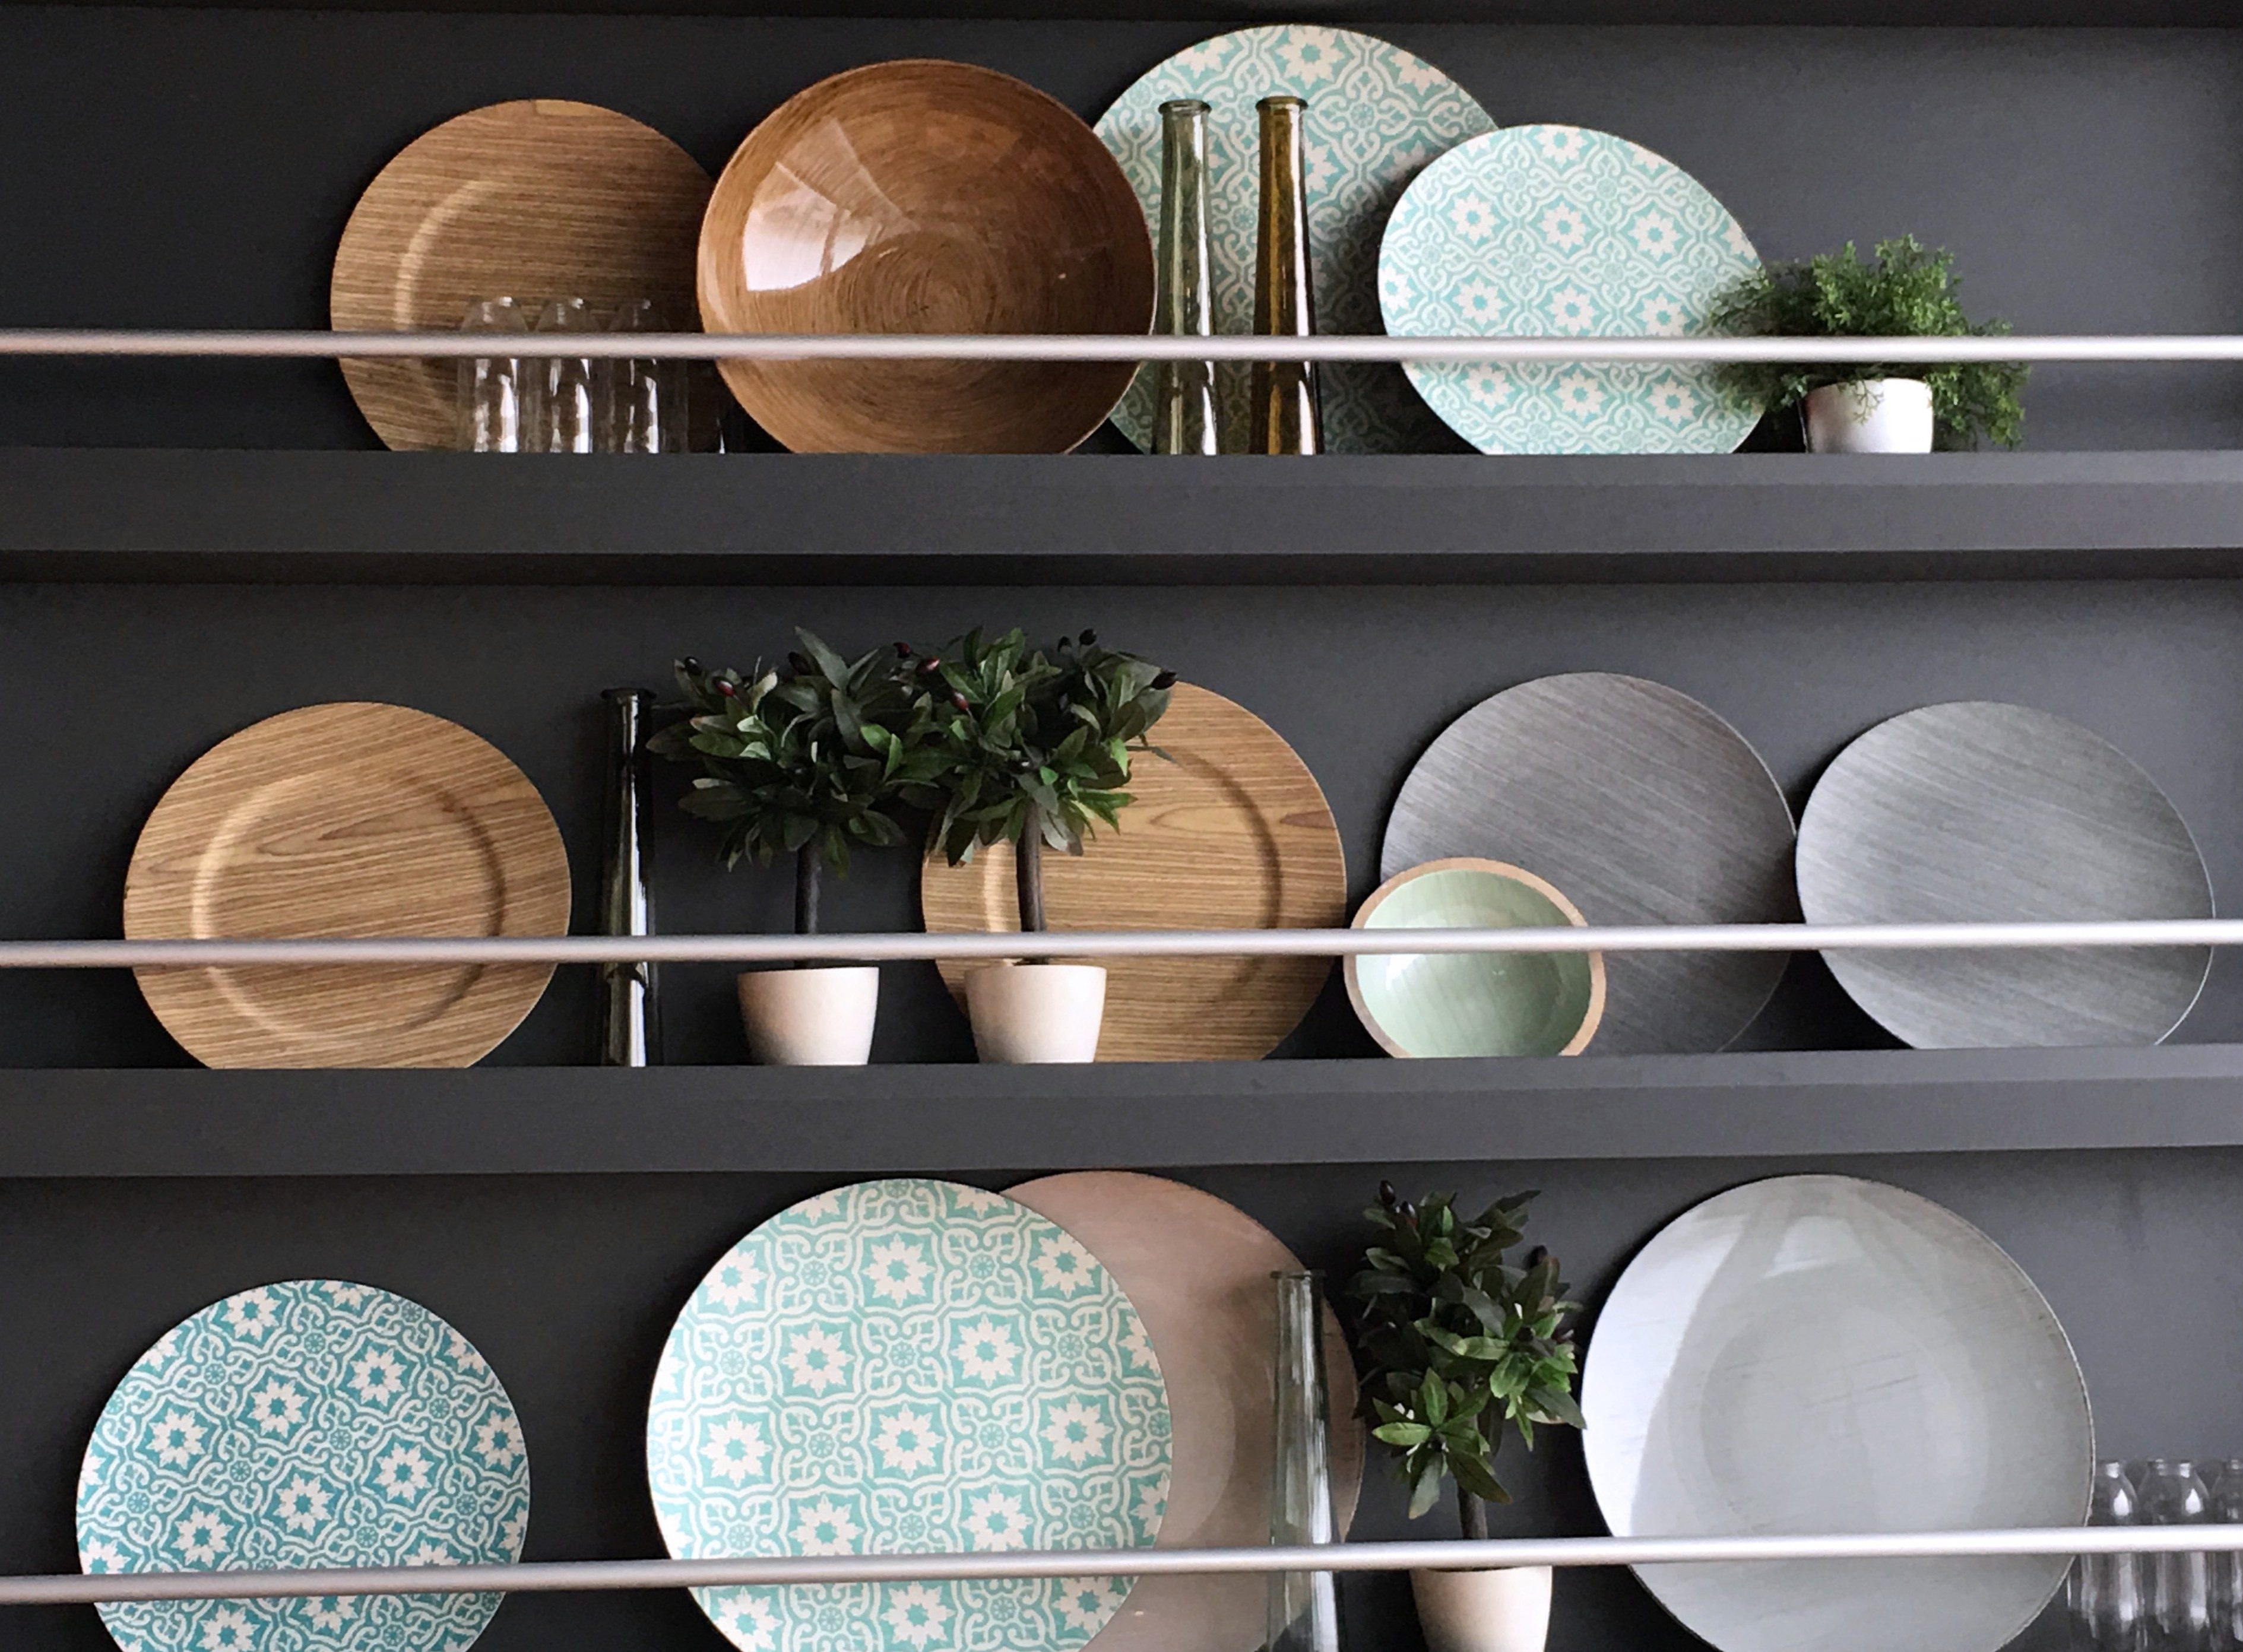 Dish shelf photographed in the kitchn